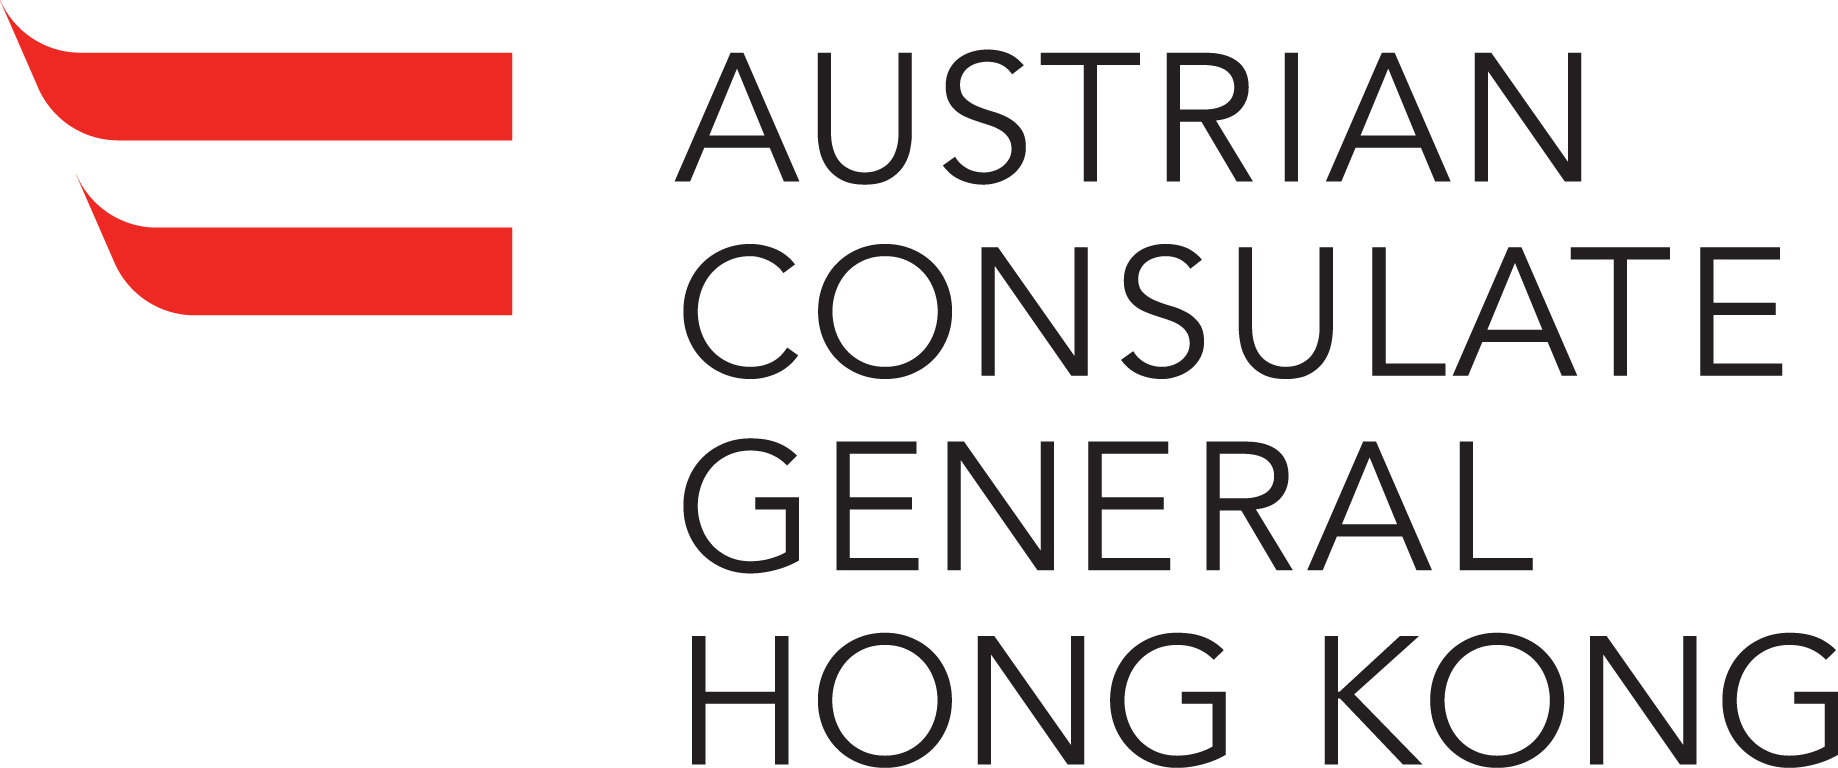 austrian consulate general hong kong logo